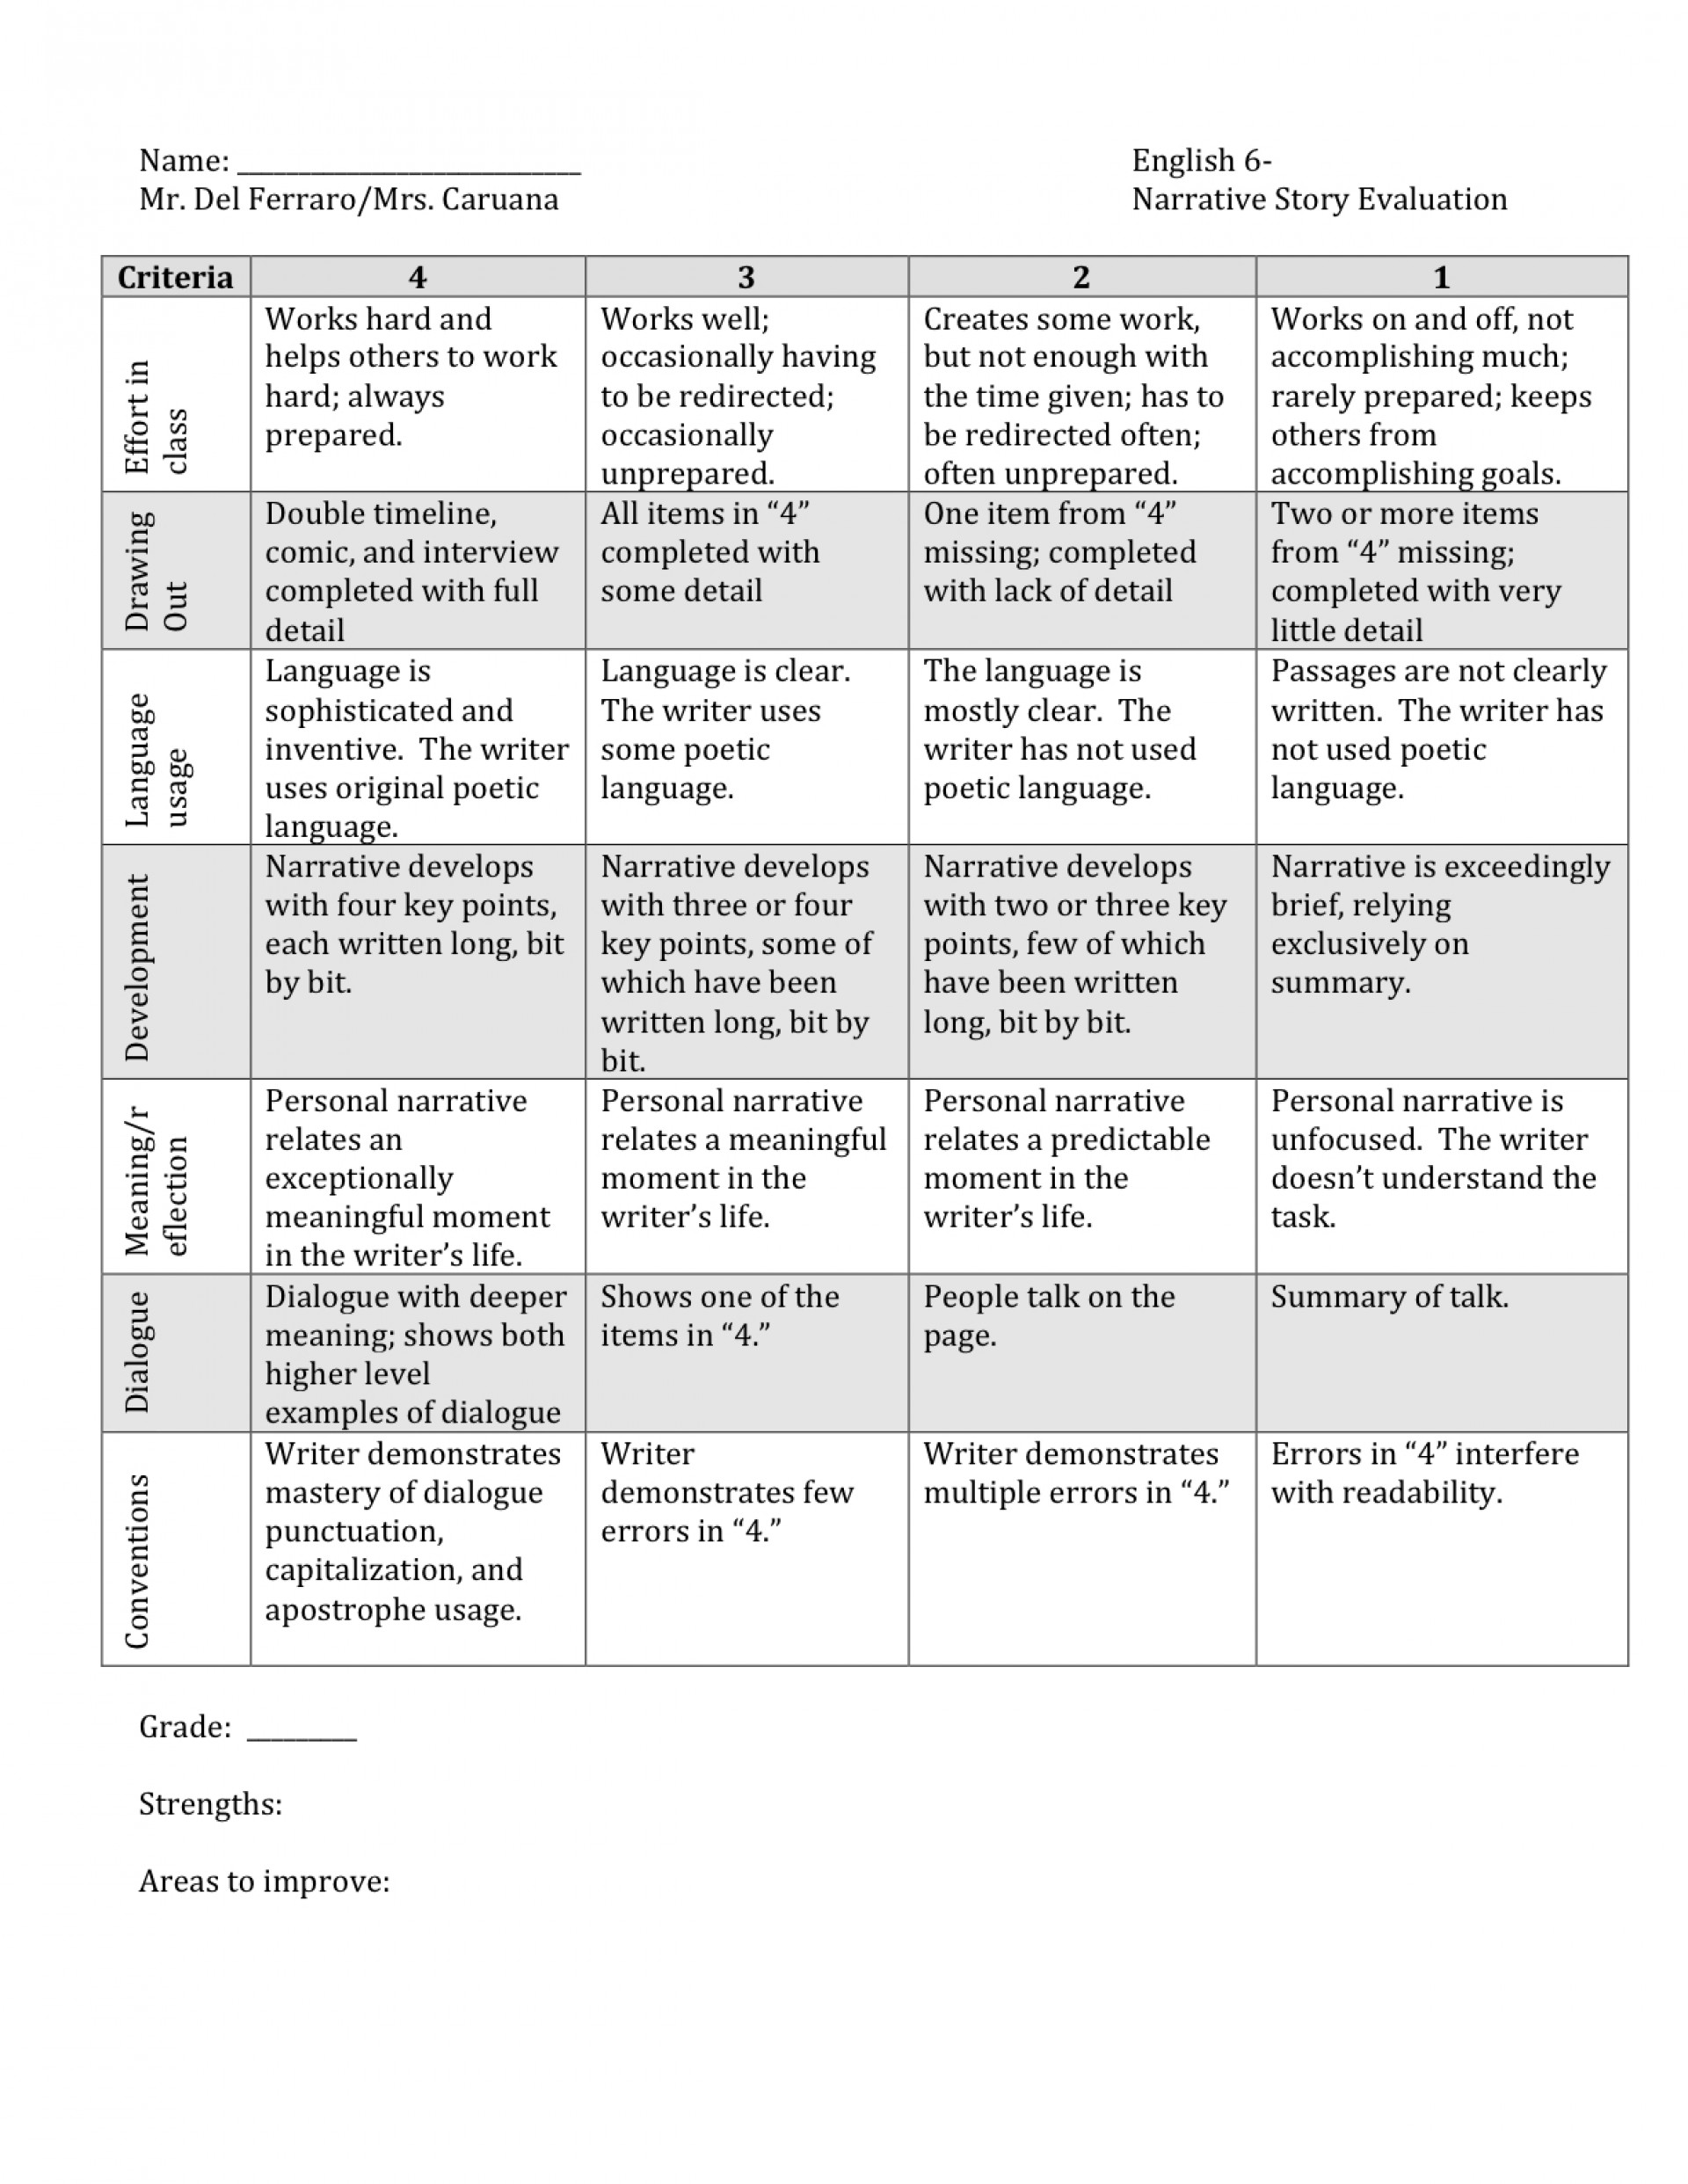 017 English Research Paper Rubric Marvelous 101 1920